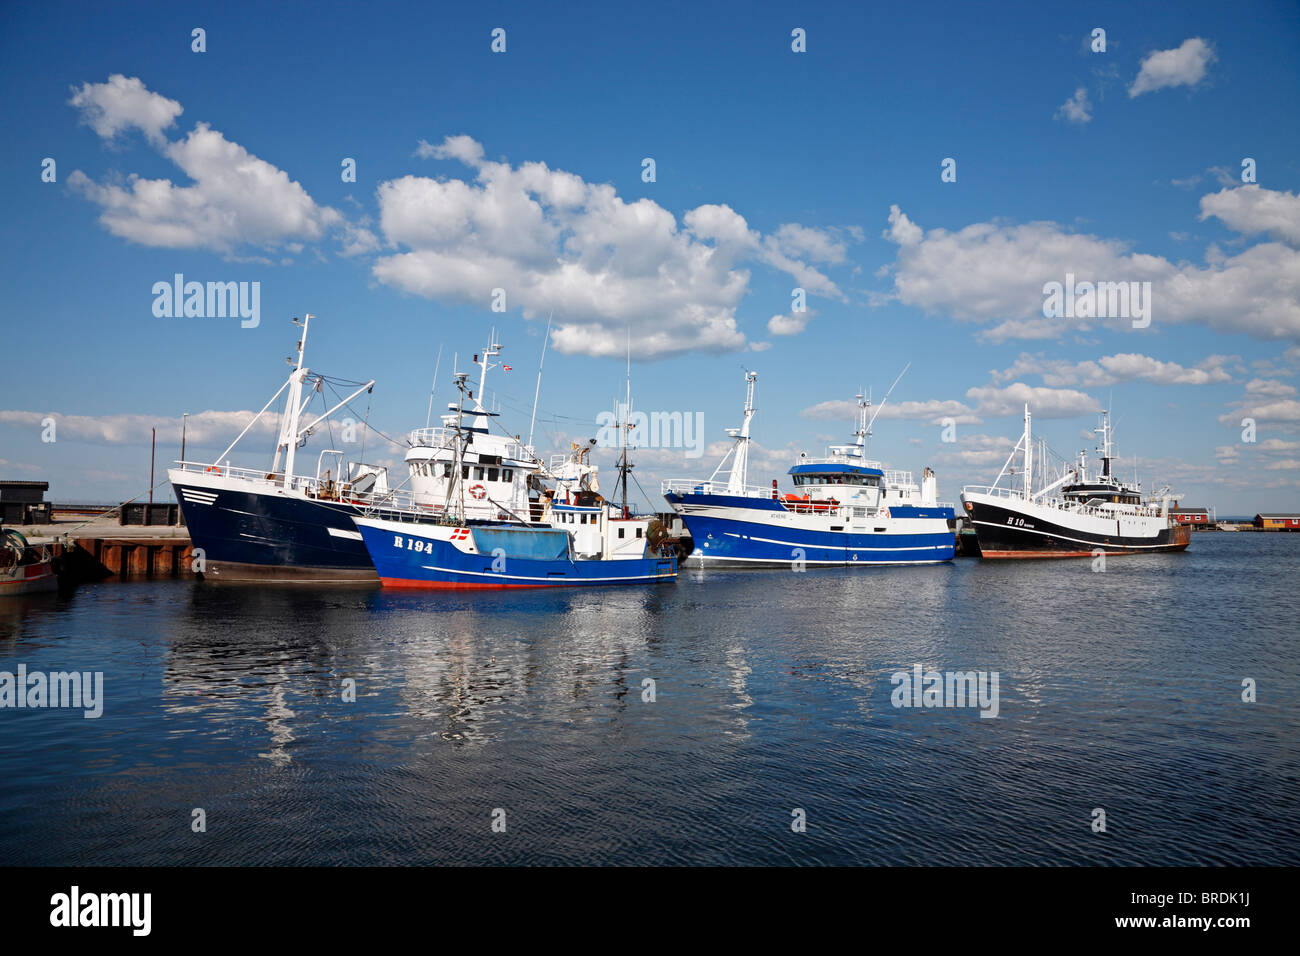 Part of the fishing fleet in the Danish harbour Gilleleje on the north coast of Zealand, Denmark - Stock Image